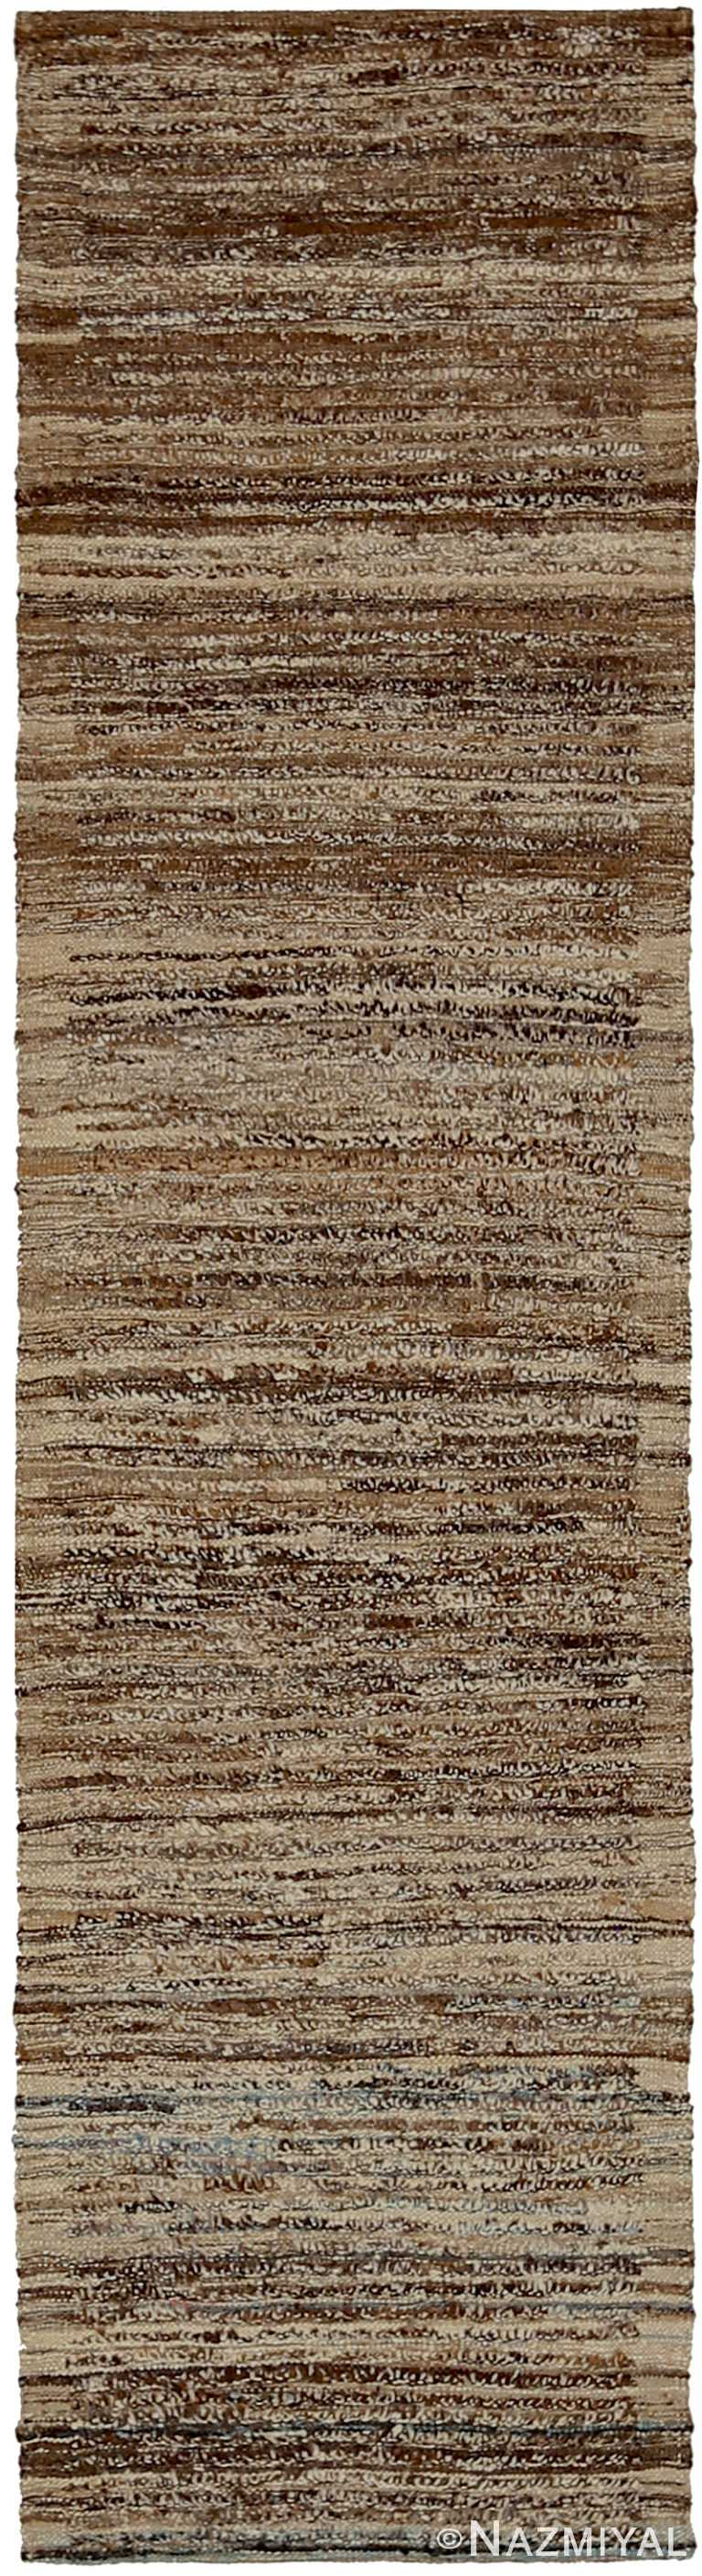 Brown and Beige Modern Moroccan Style Runner Rug 60348 by Nazmiyal NYC